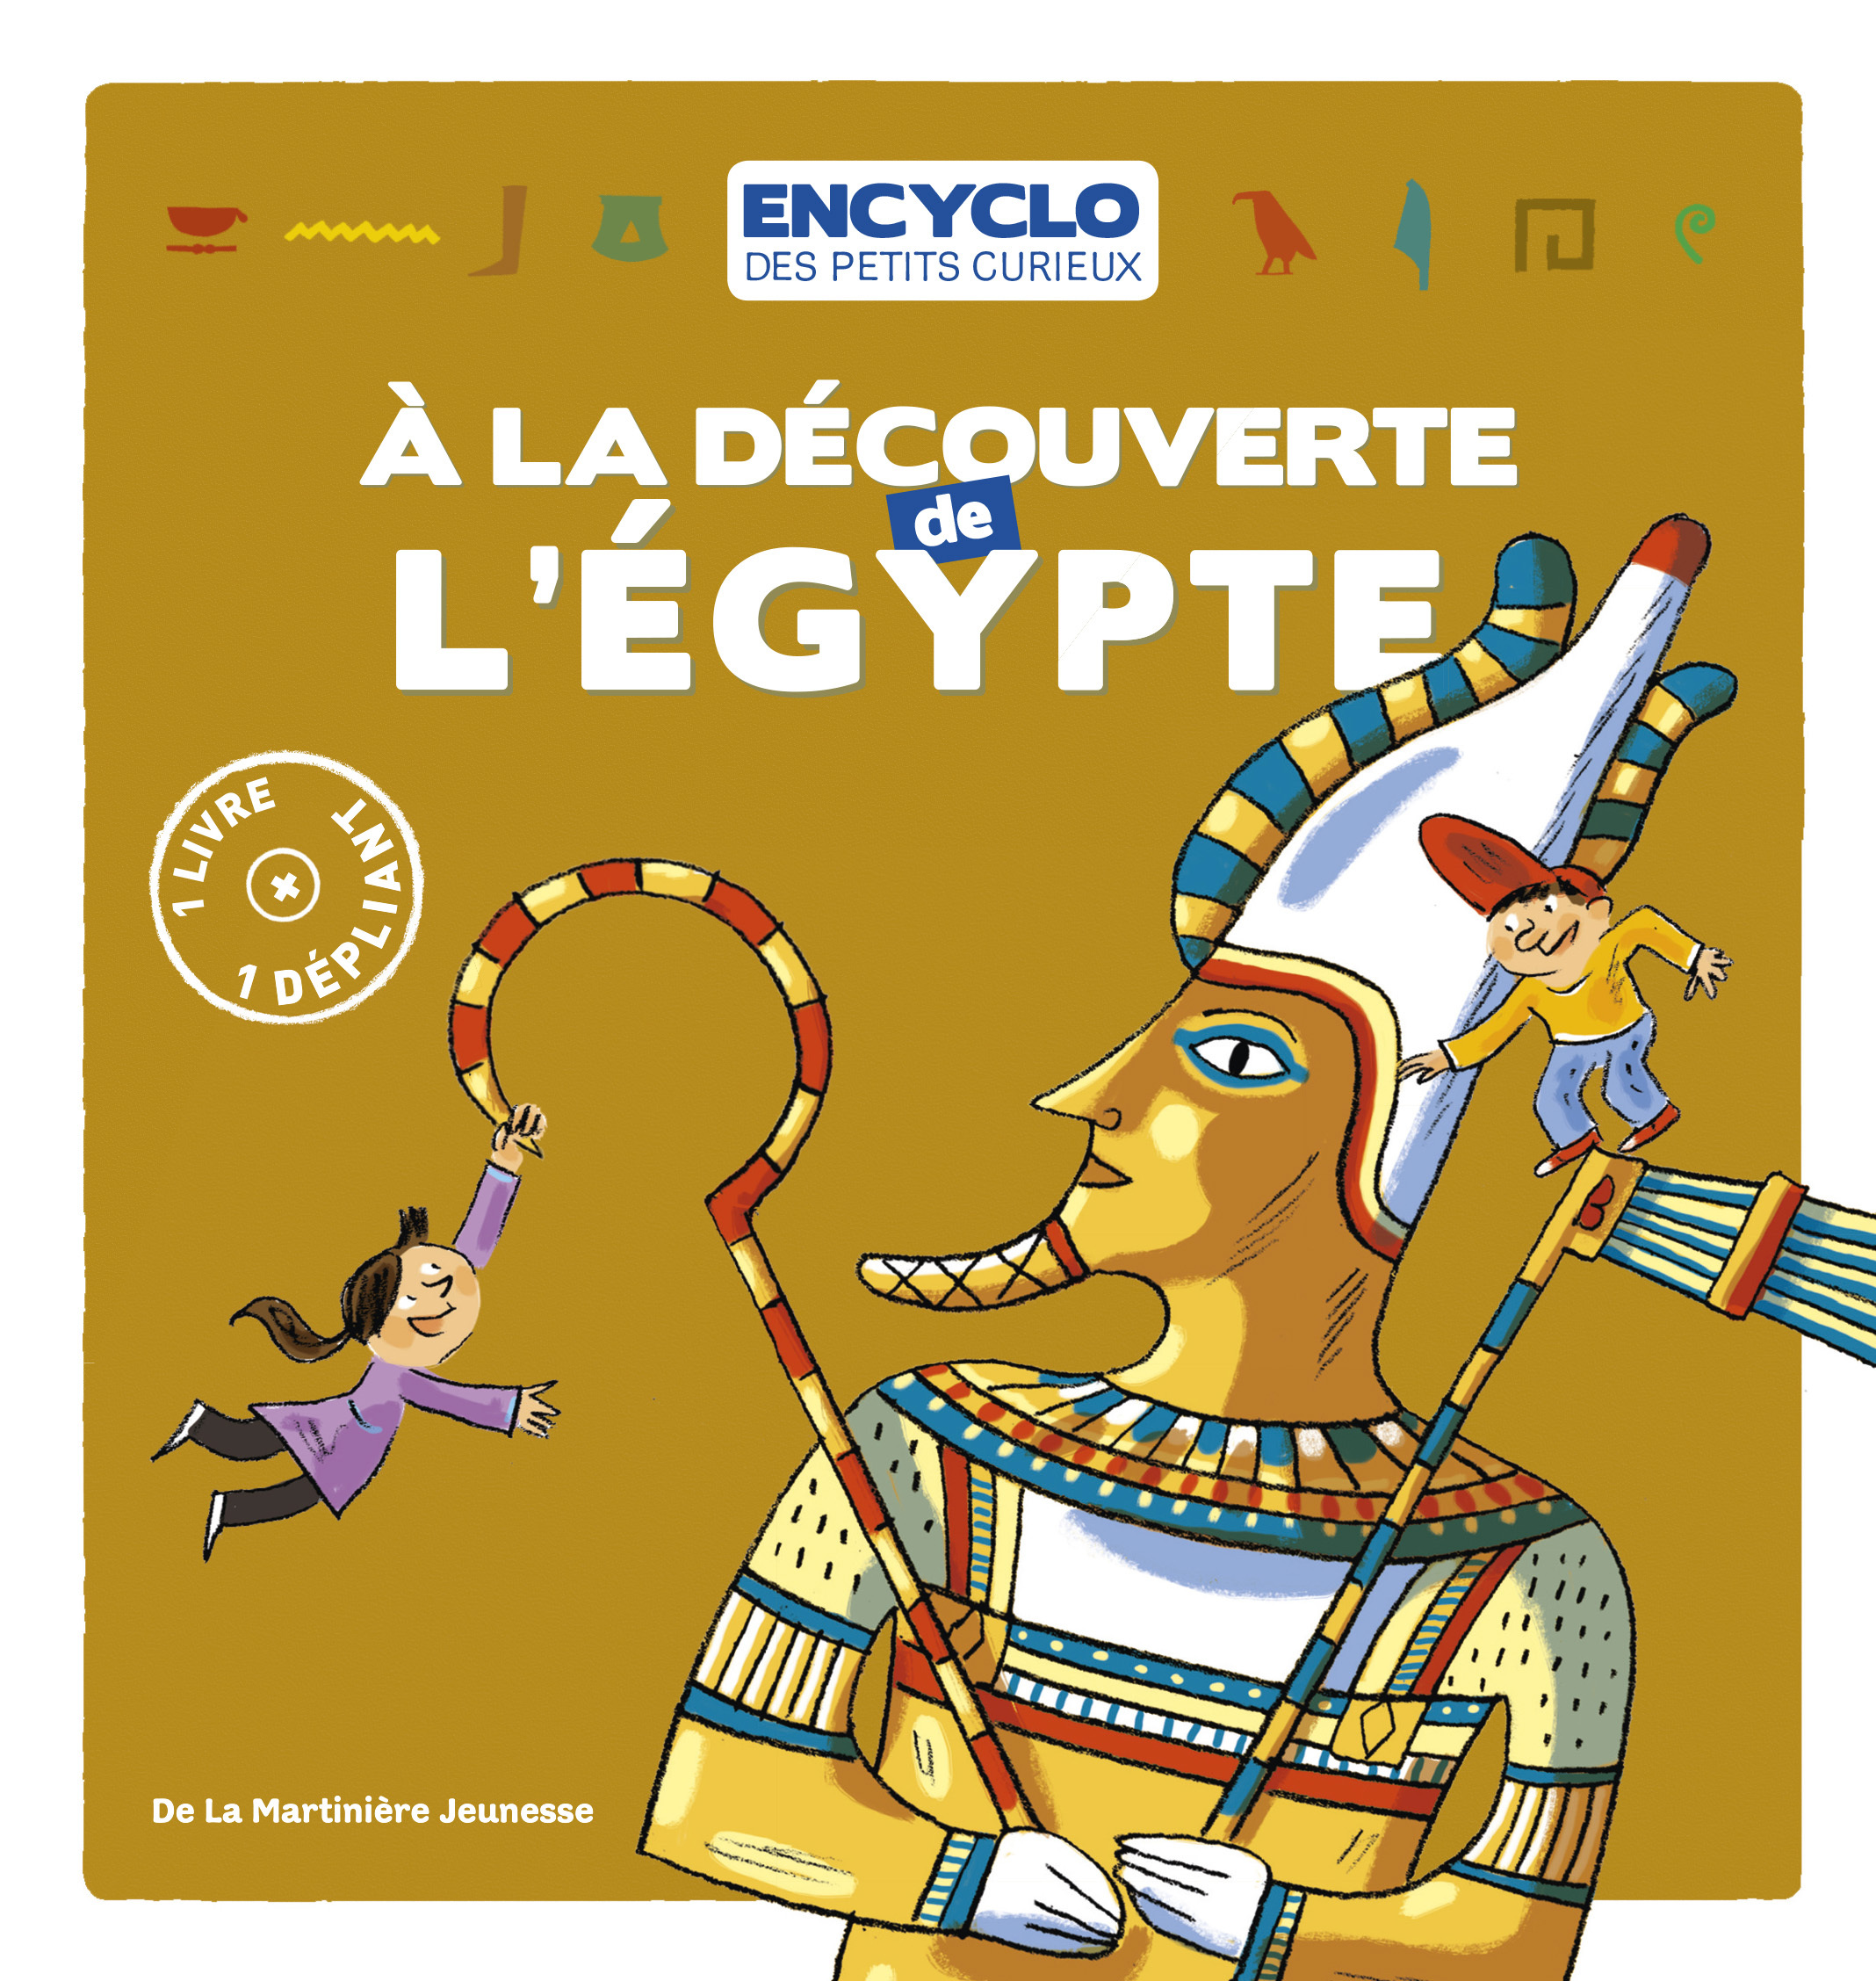 A LA DECOUVERTE DE L'EGYPTE